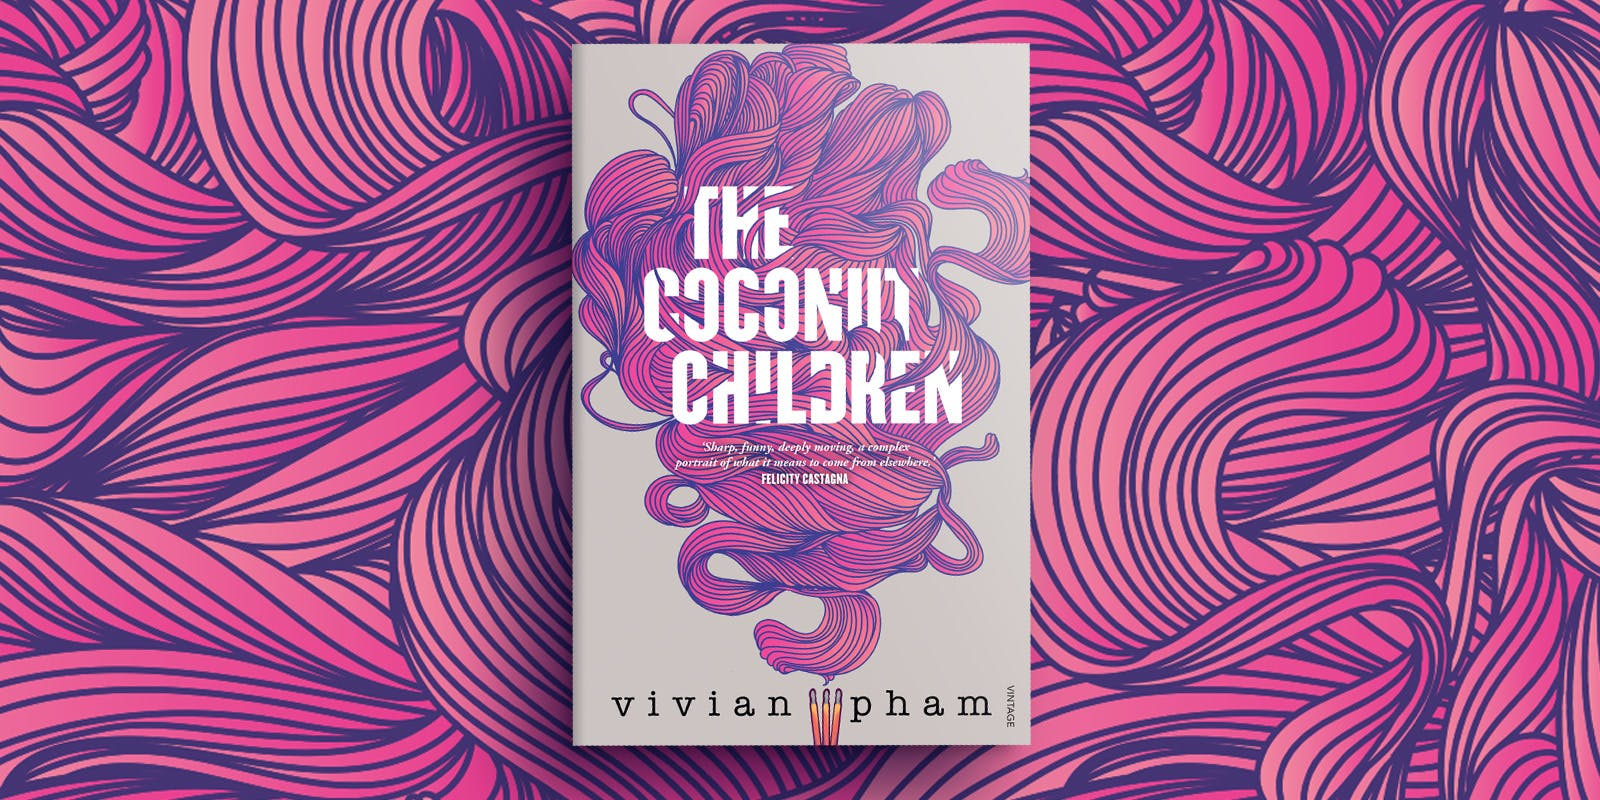 The Coconut Children book club notes